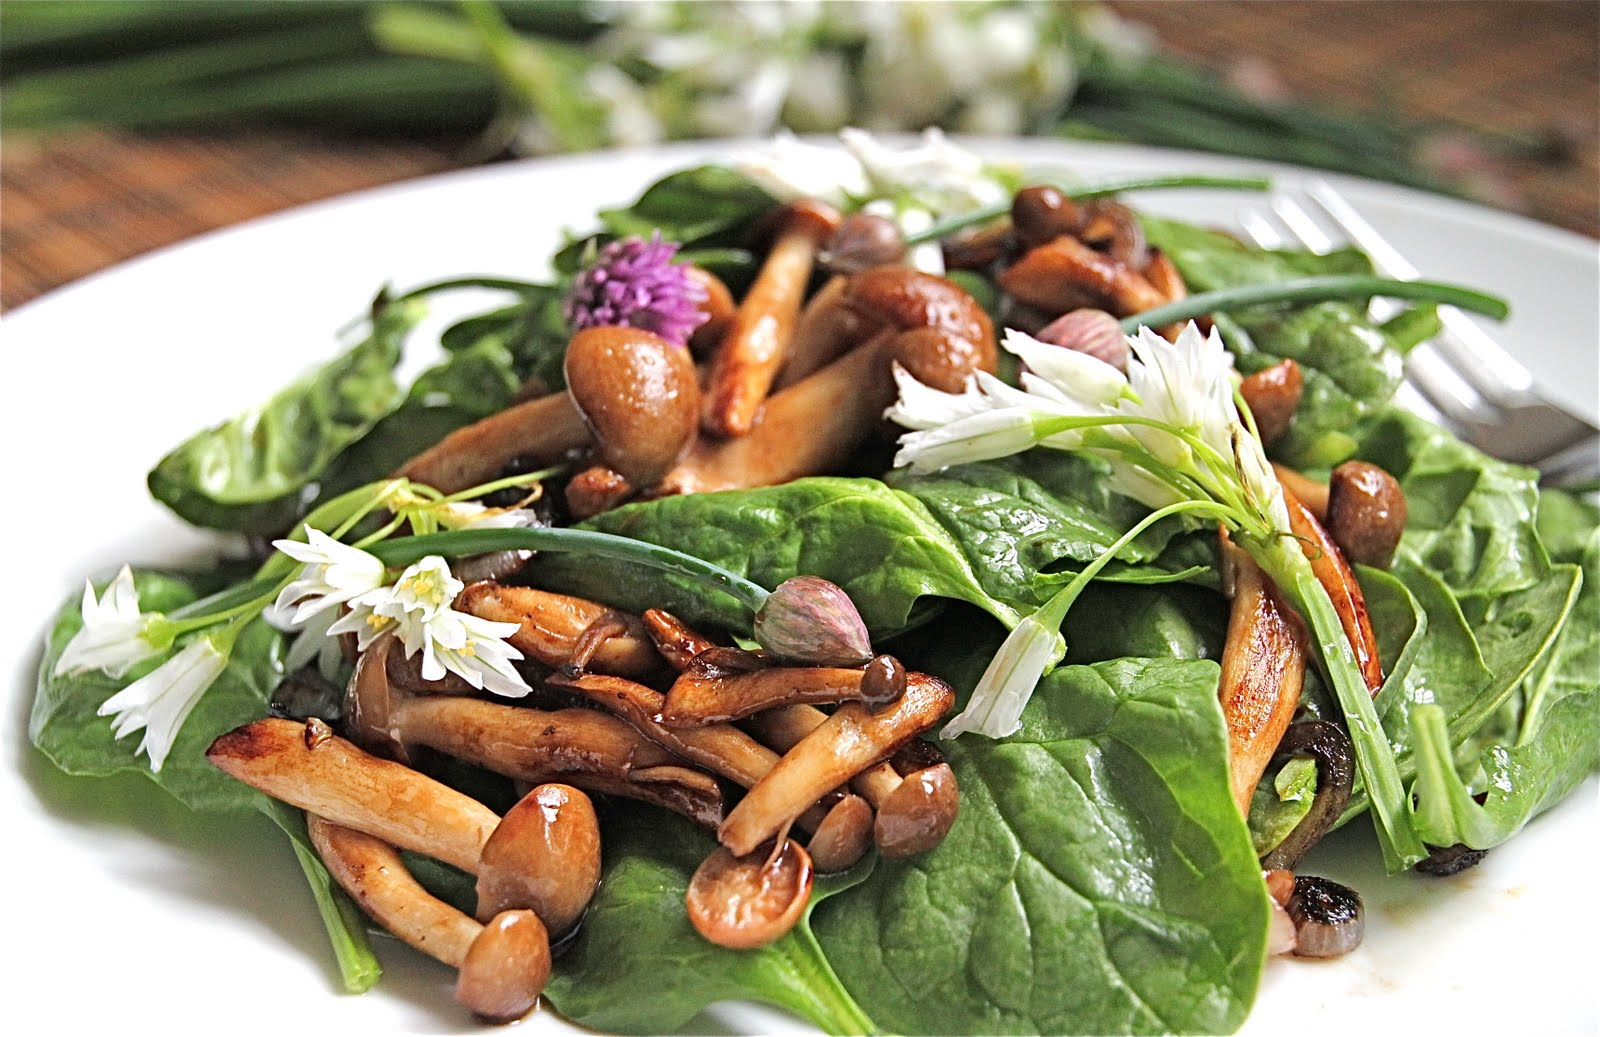 Warm Mushroom Spinach Salad with Fresh Arugula Flowers and Chives ...